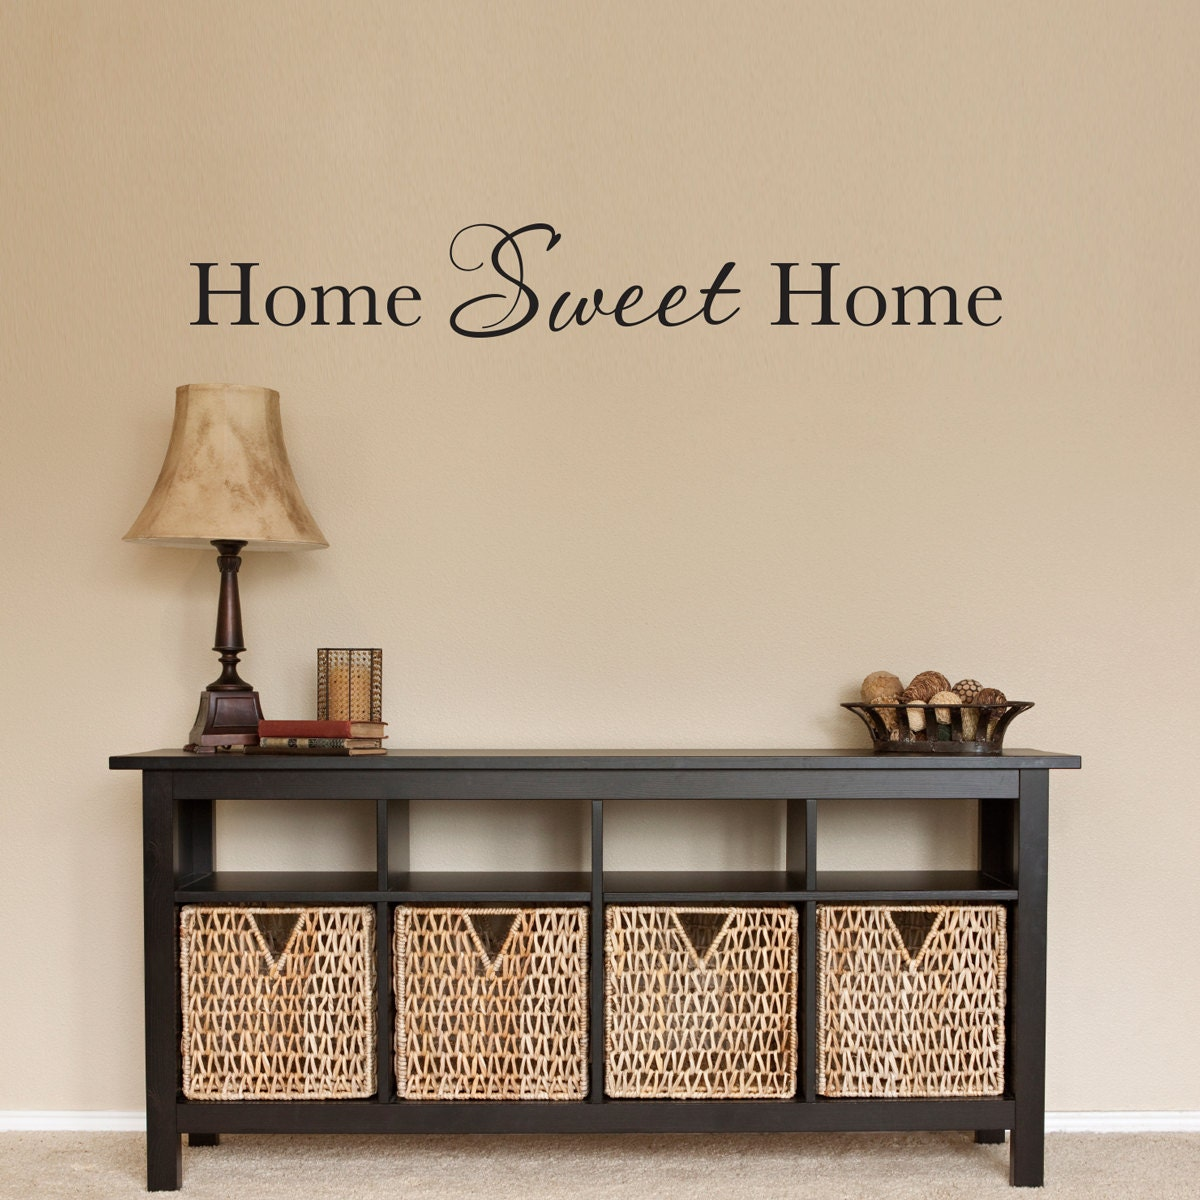 Wall stickers home sweet home - Details Home Sweet Home Wall Decal